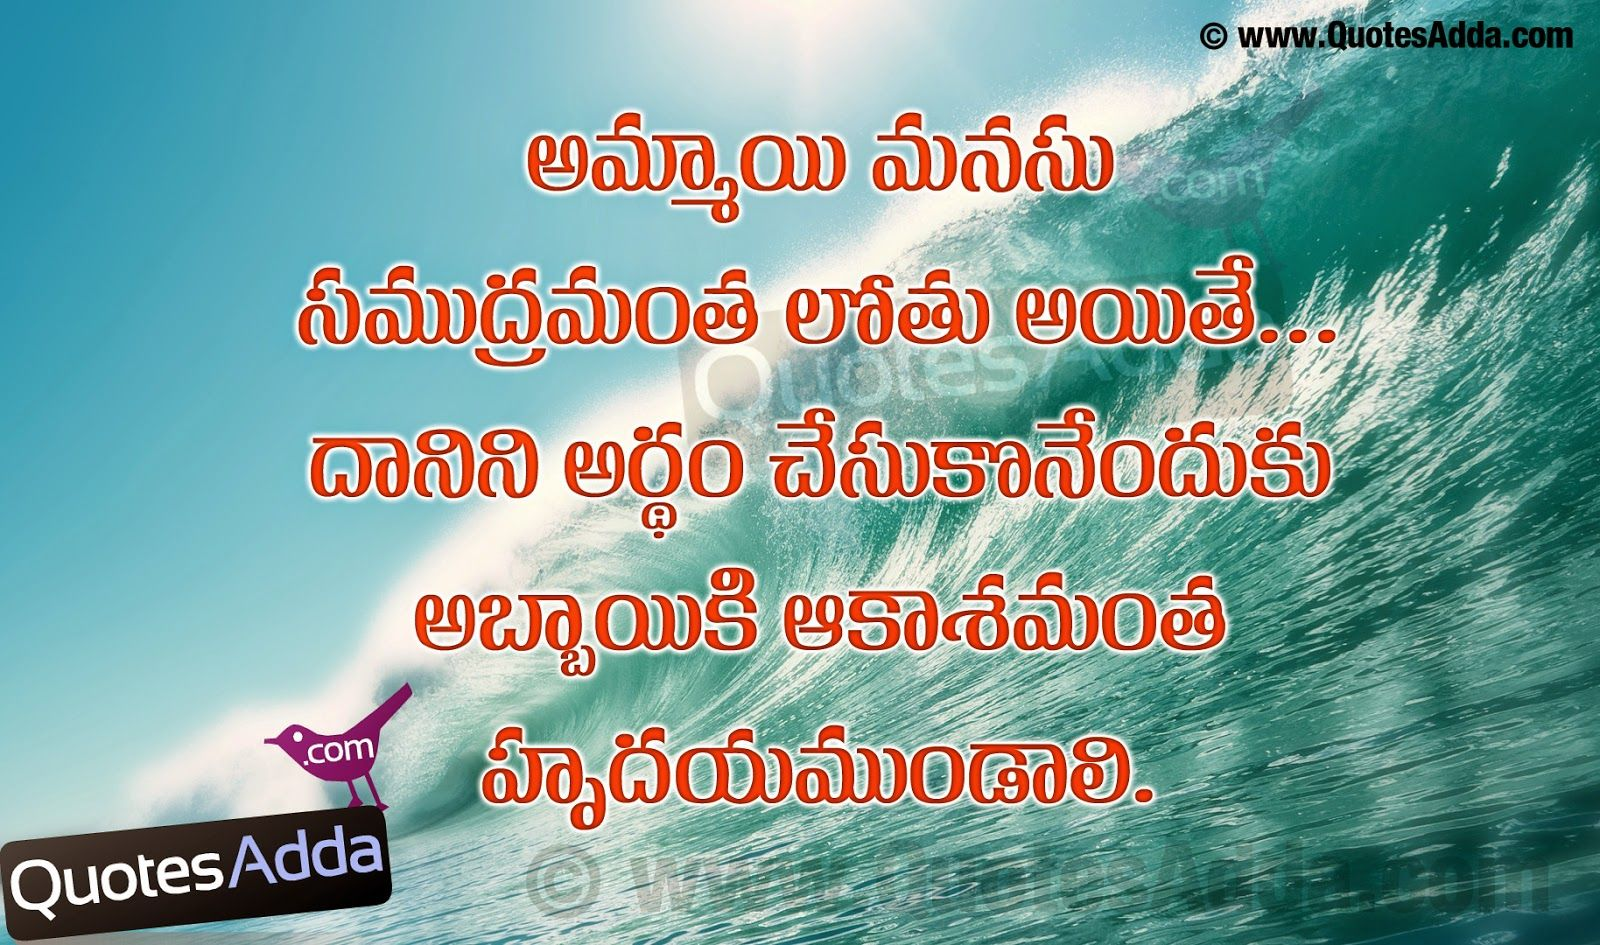 Telugu+New+Love+Quotations+-+JUN29++-+QuotesAdda.com.jpg ...